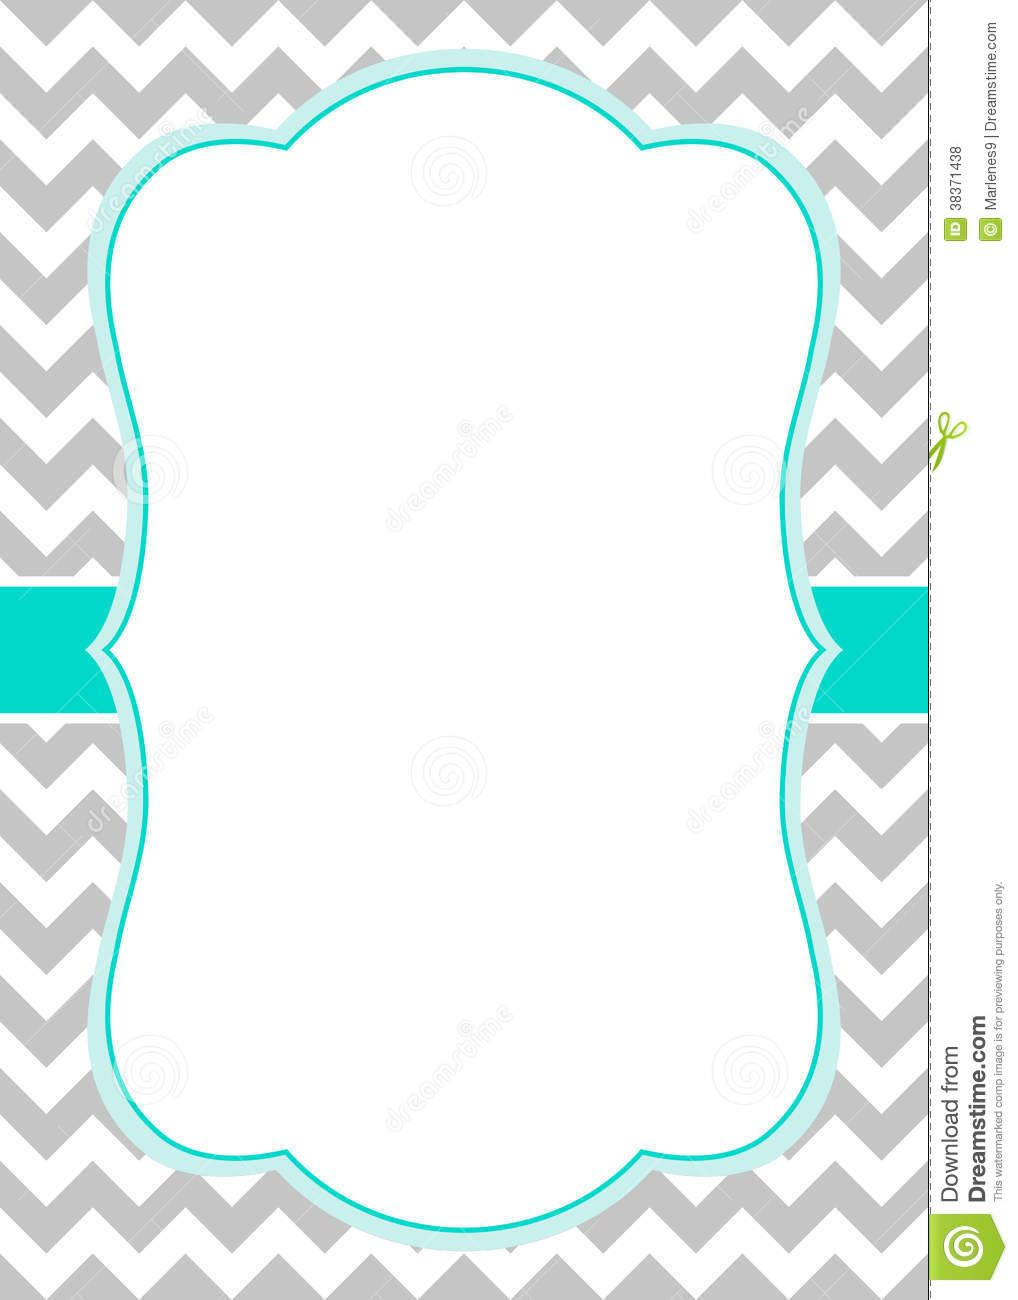 Free Chevron Border Templateadmin Admin | Baby Shower Ideas ...